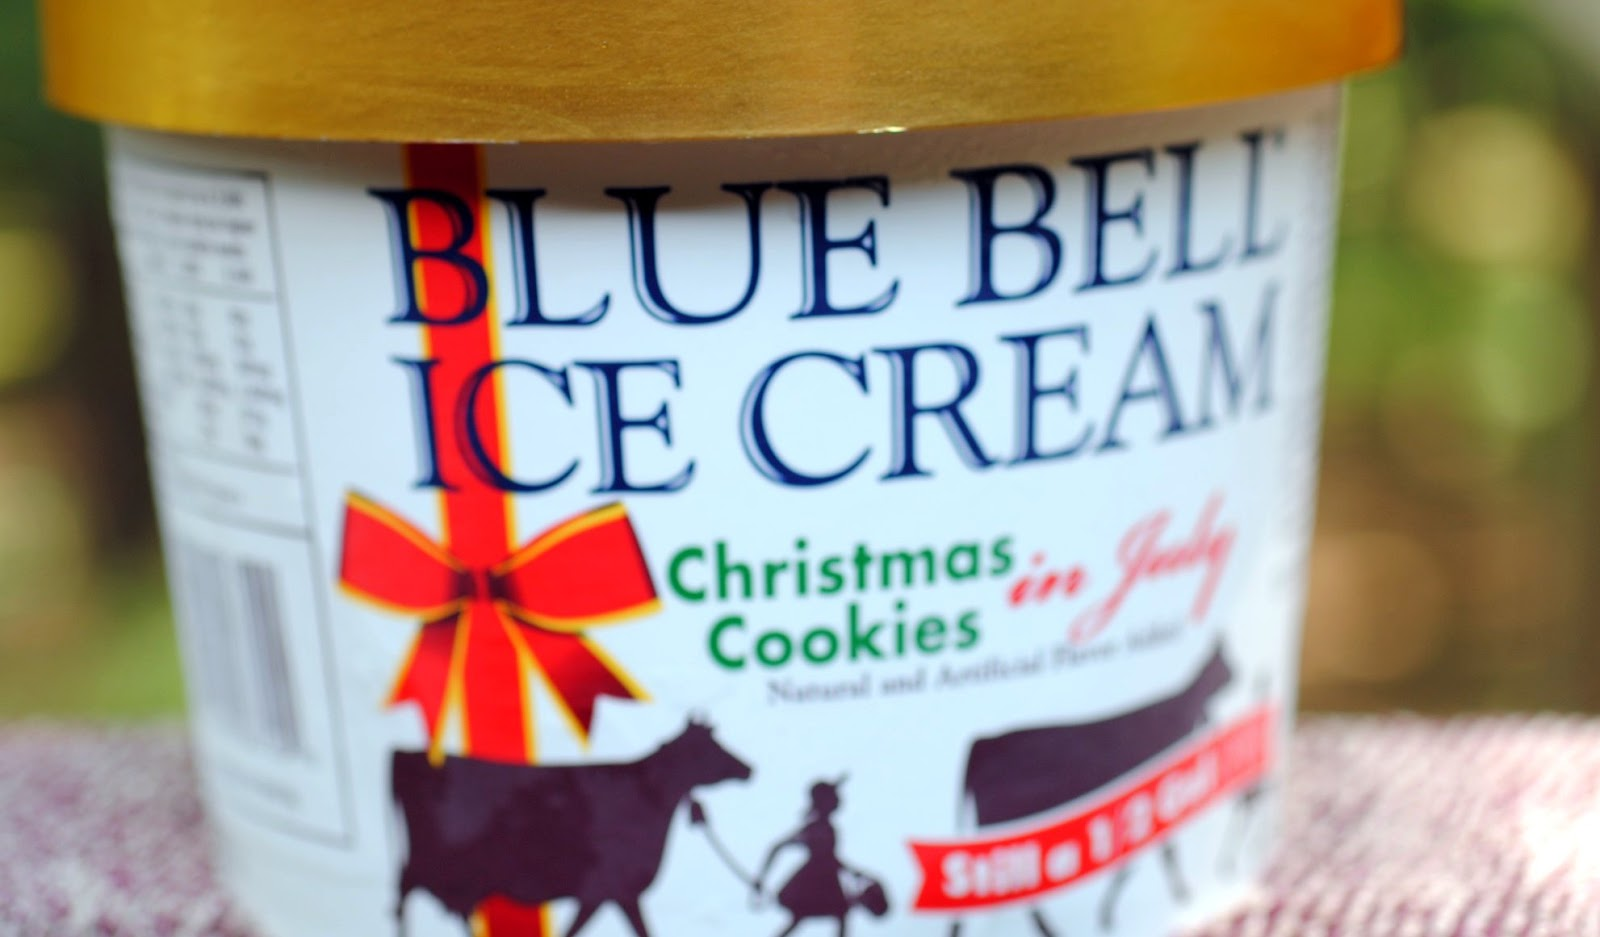 food and ice cream recipes review blue bell christmas